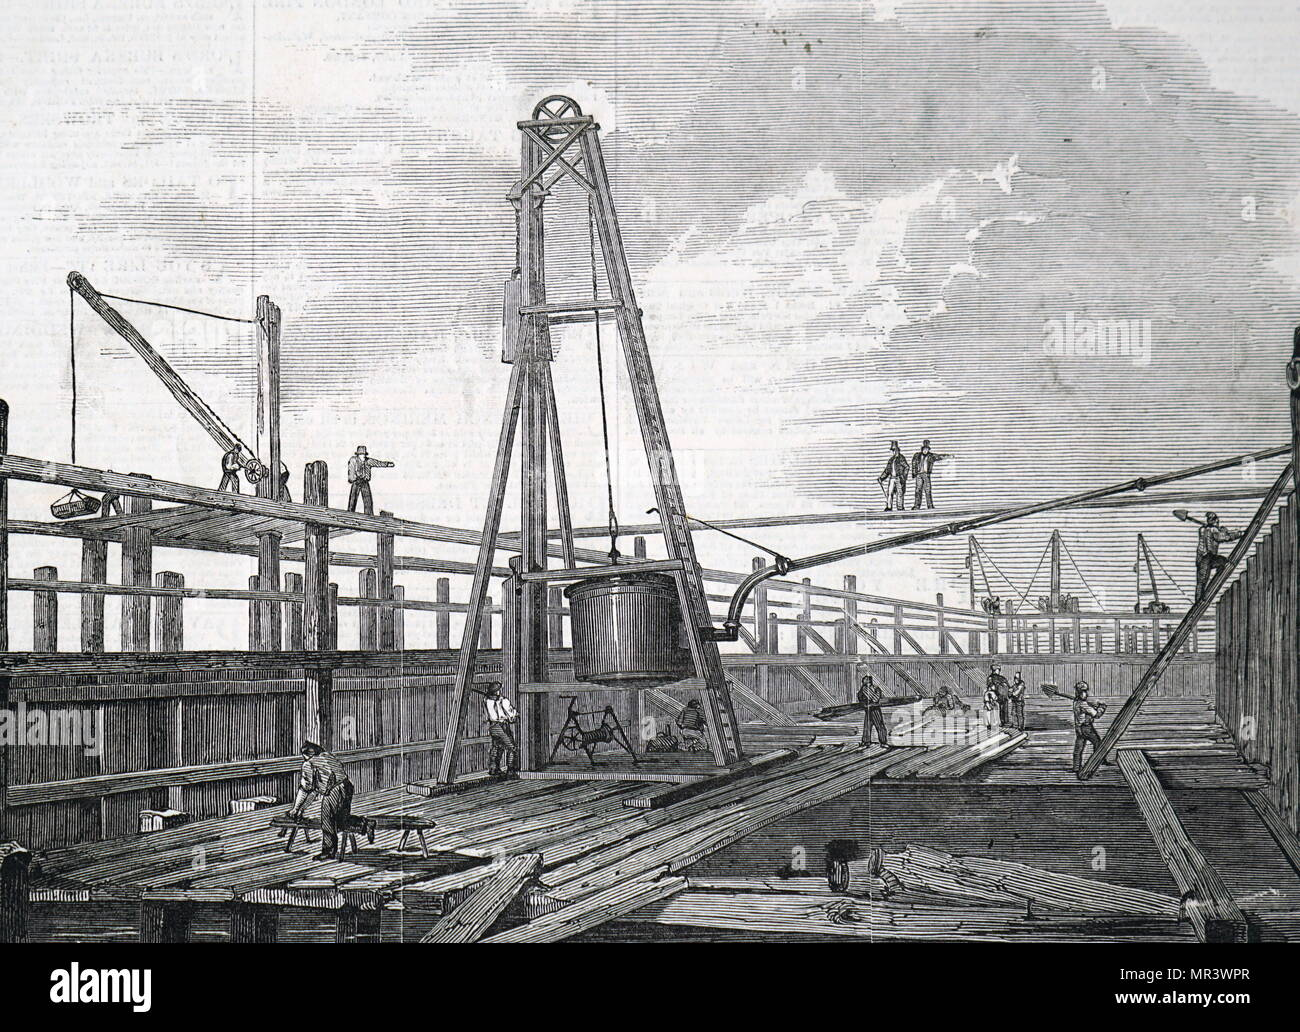 Illustration depicting Clarke & Varley's atmospheric pile driving machine. A steam engine was used to pump out the air from the cylinder, with the result that atmospheric pressure forced a piston downwards. The downward motion of the piston lifted the weight ready for dropping. Dated 19th century - Stock Image